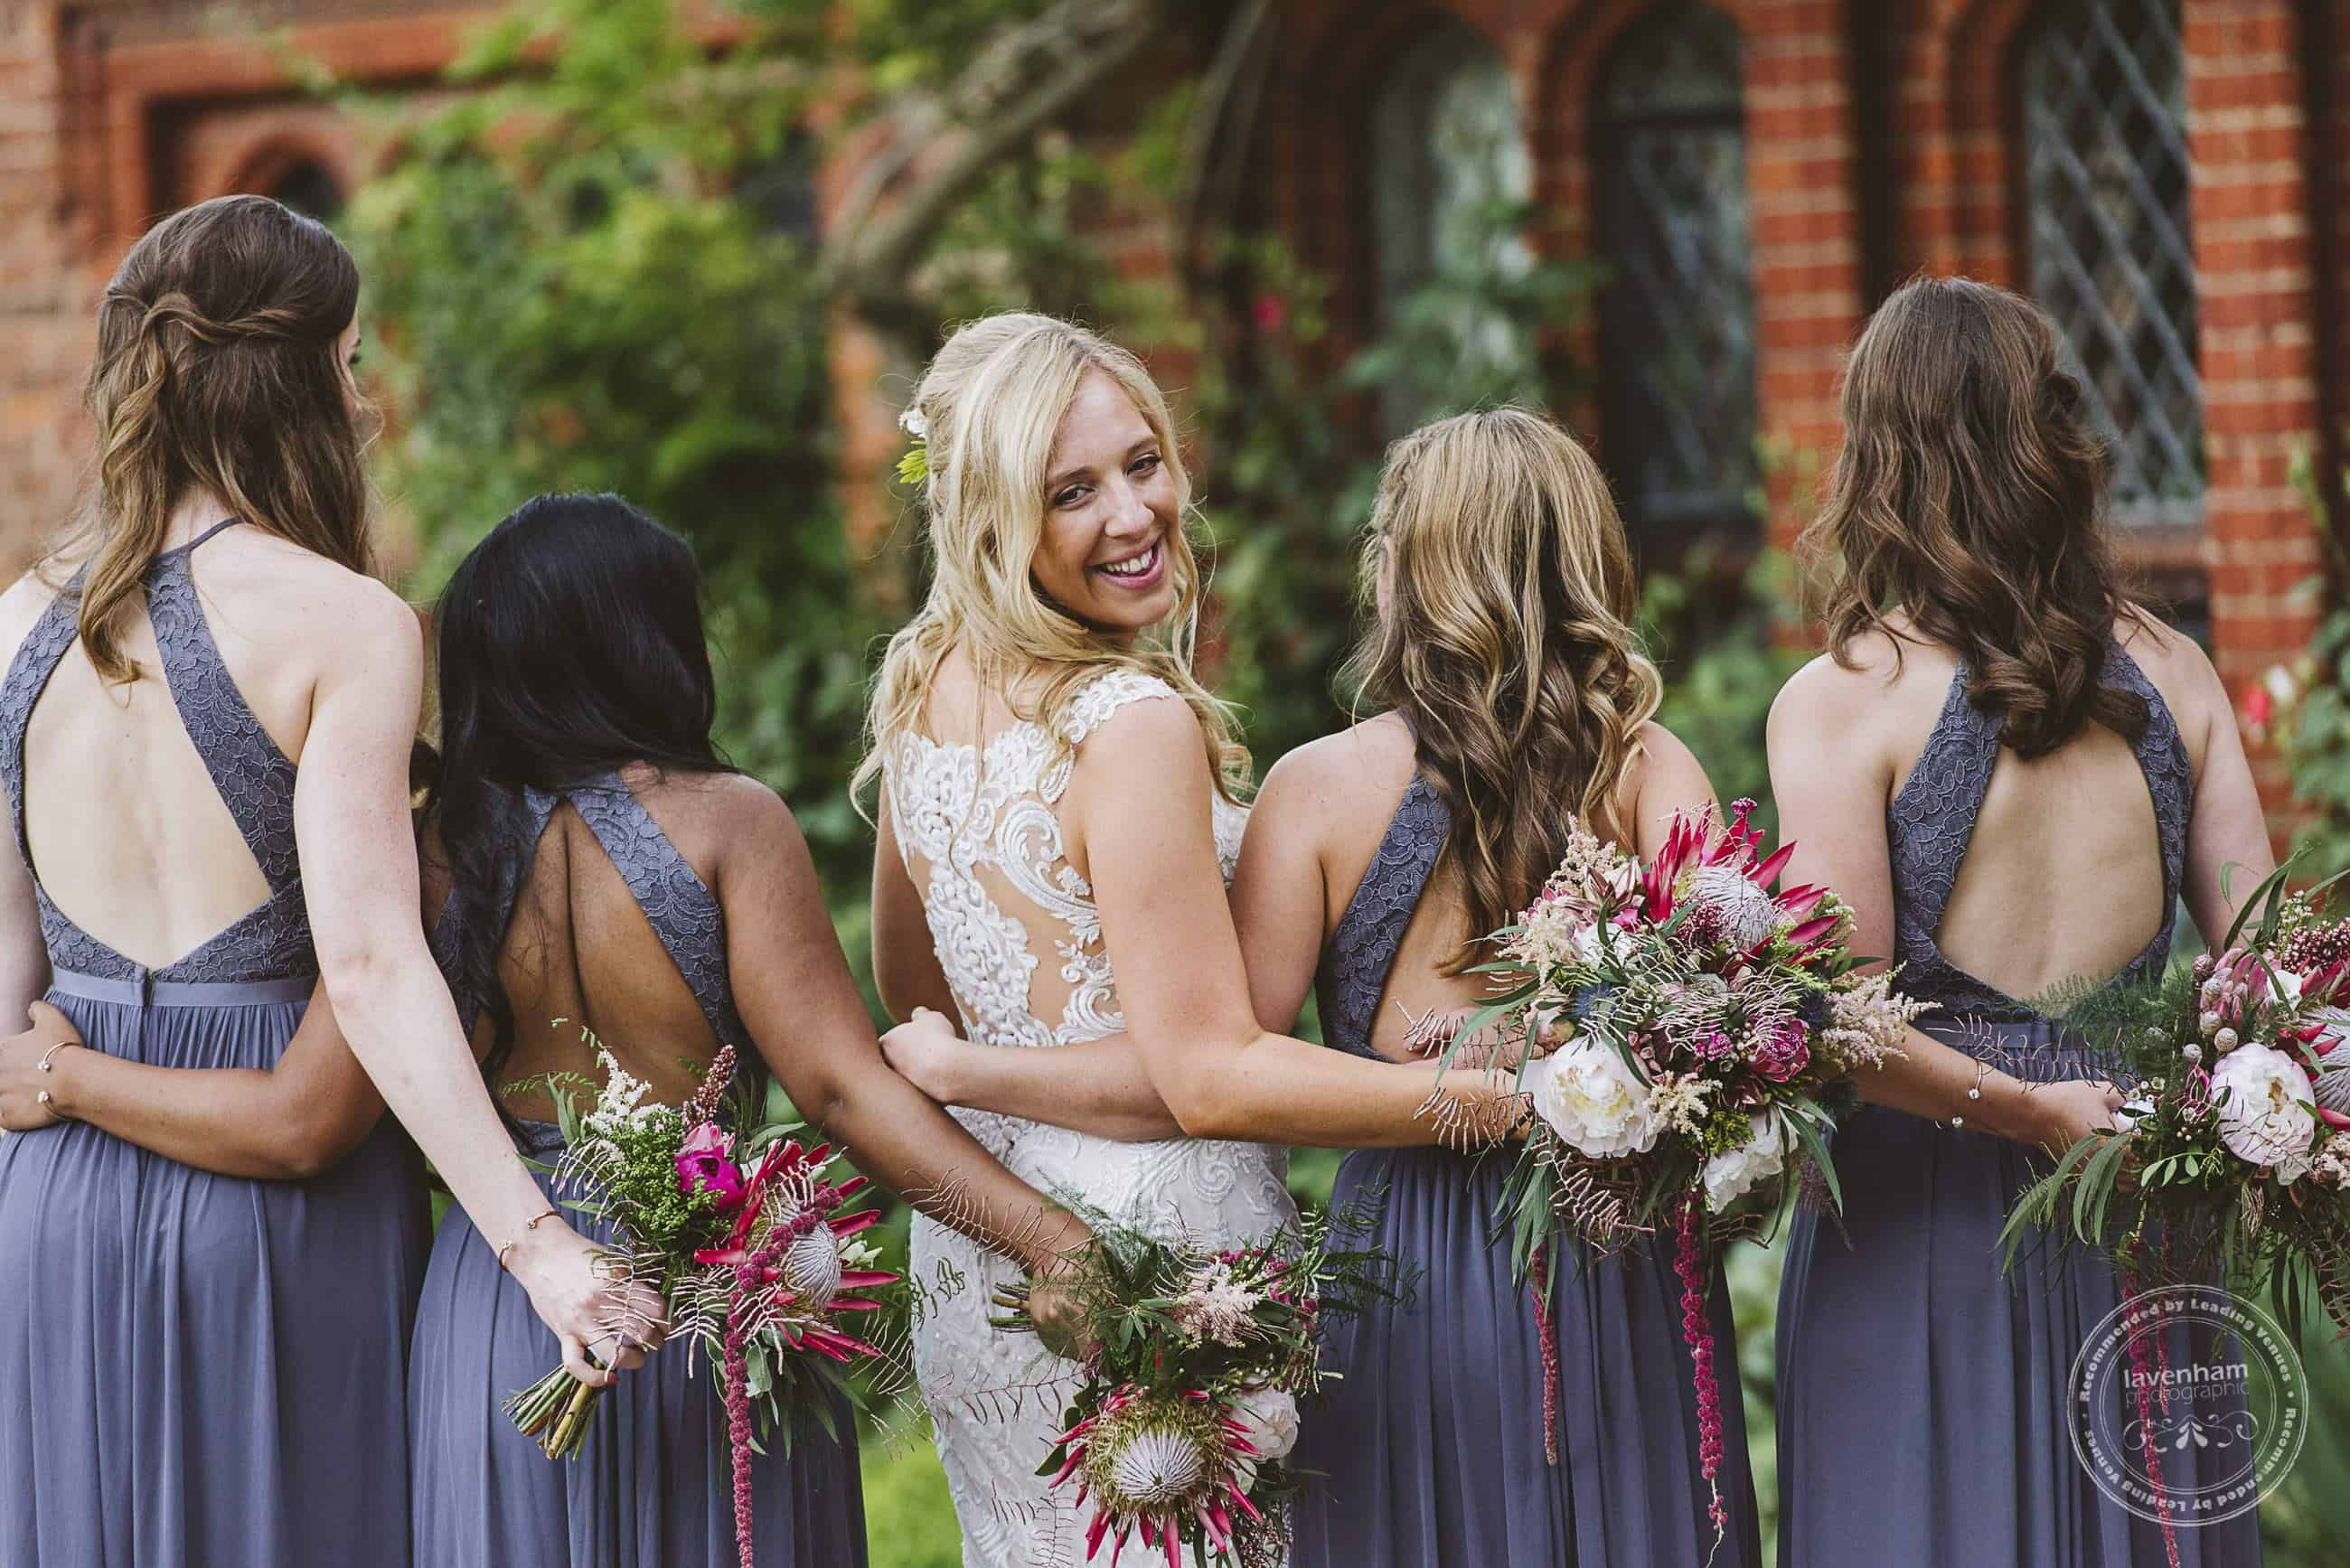 Bride, with her bridesmaids. This photo shows off the bouquets, bridesmaids dress colours, and the girl's hair